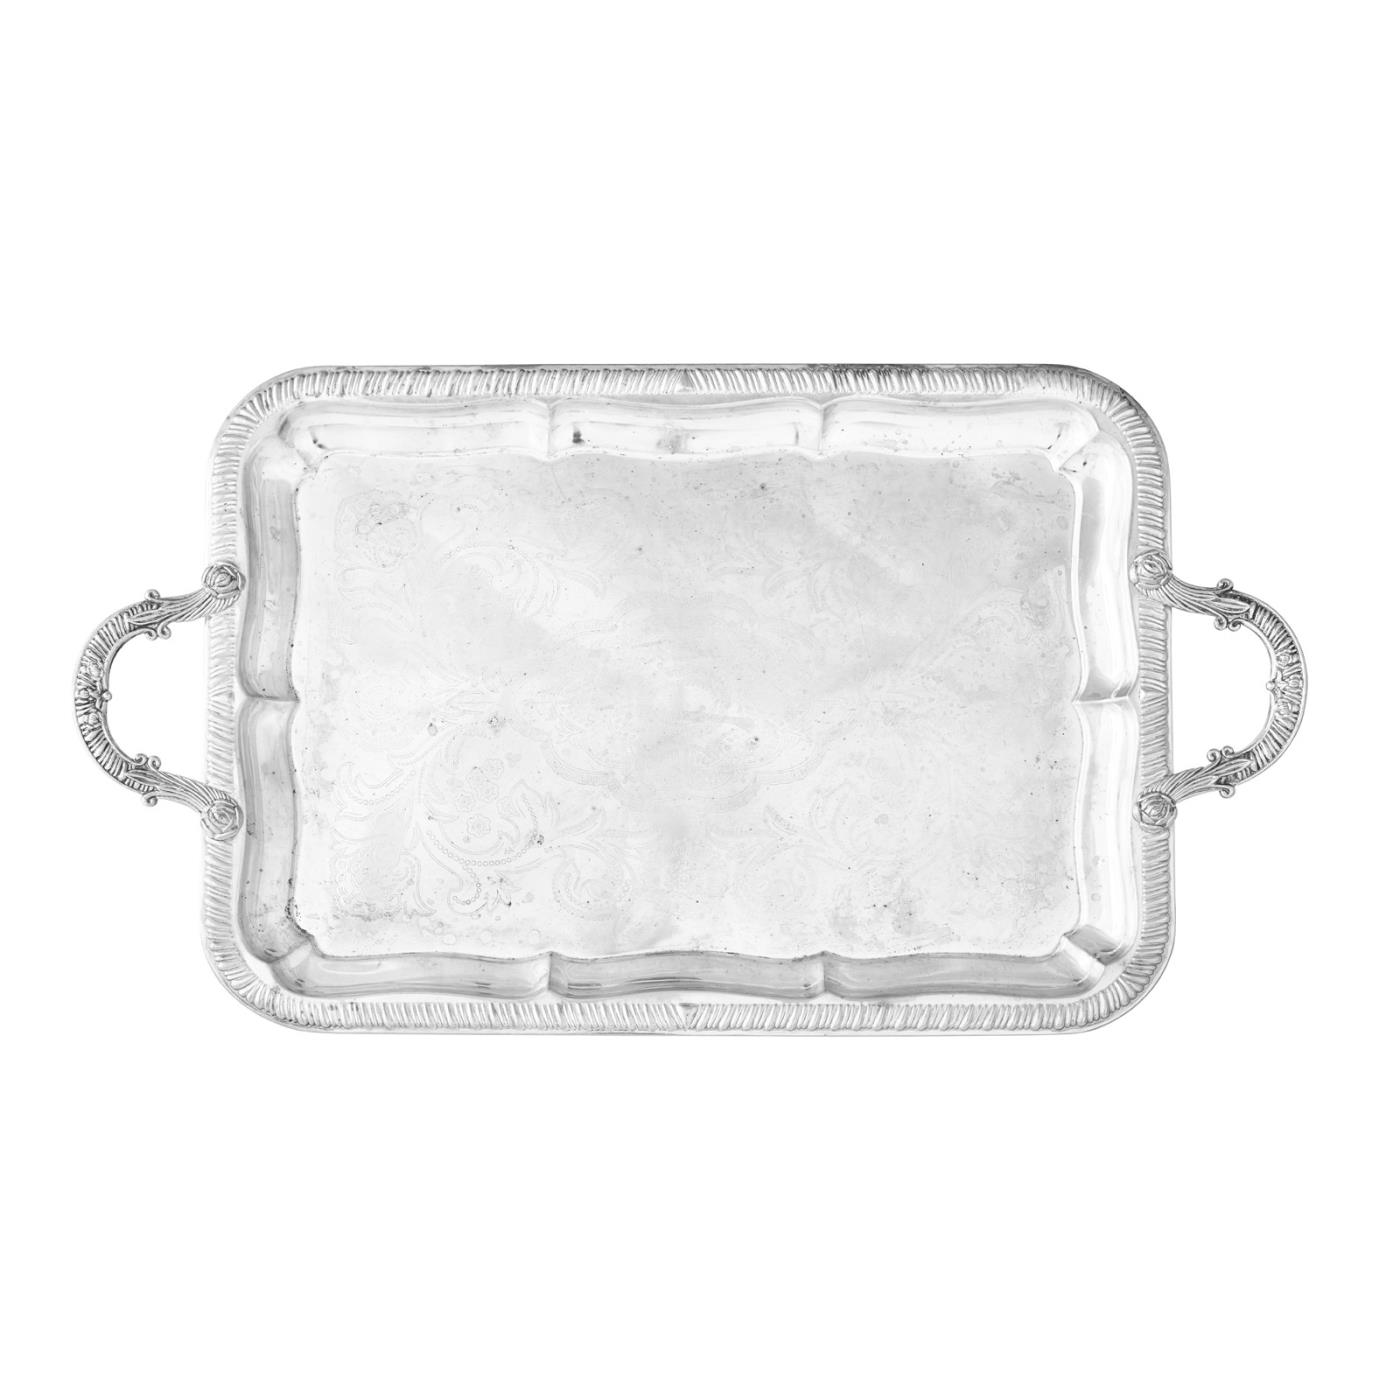 Silver Oblong Tray With Handles